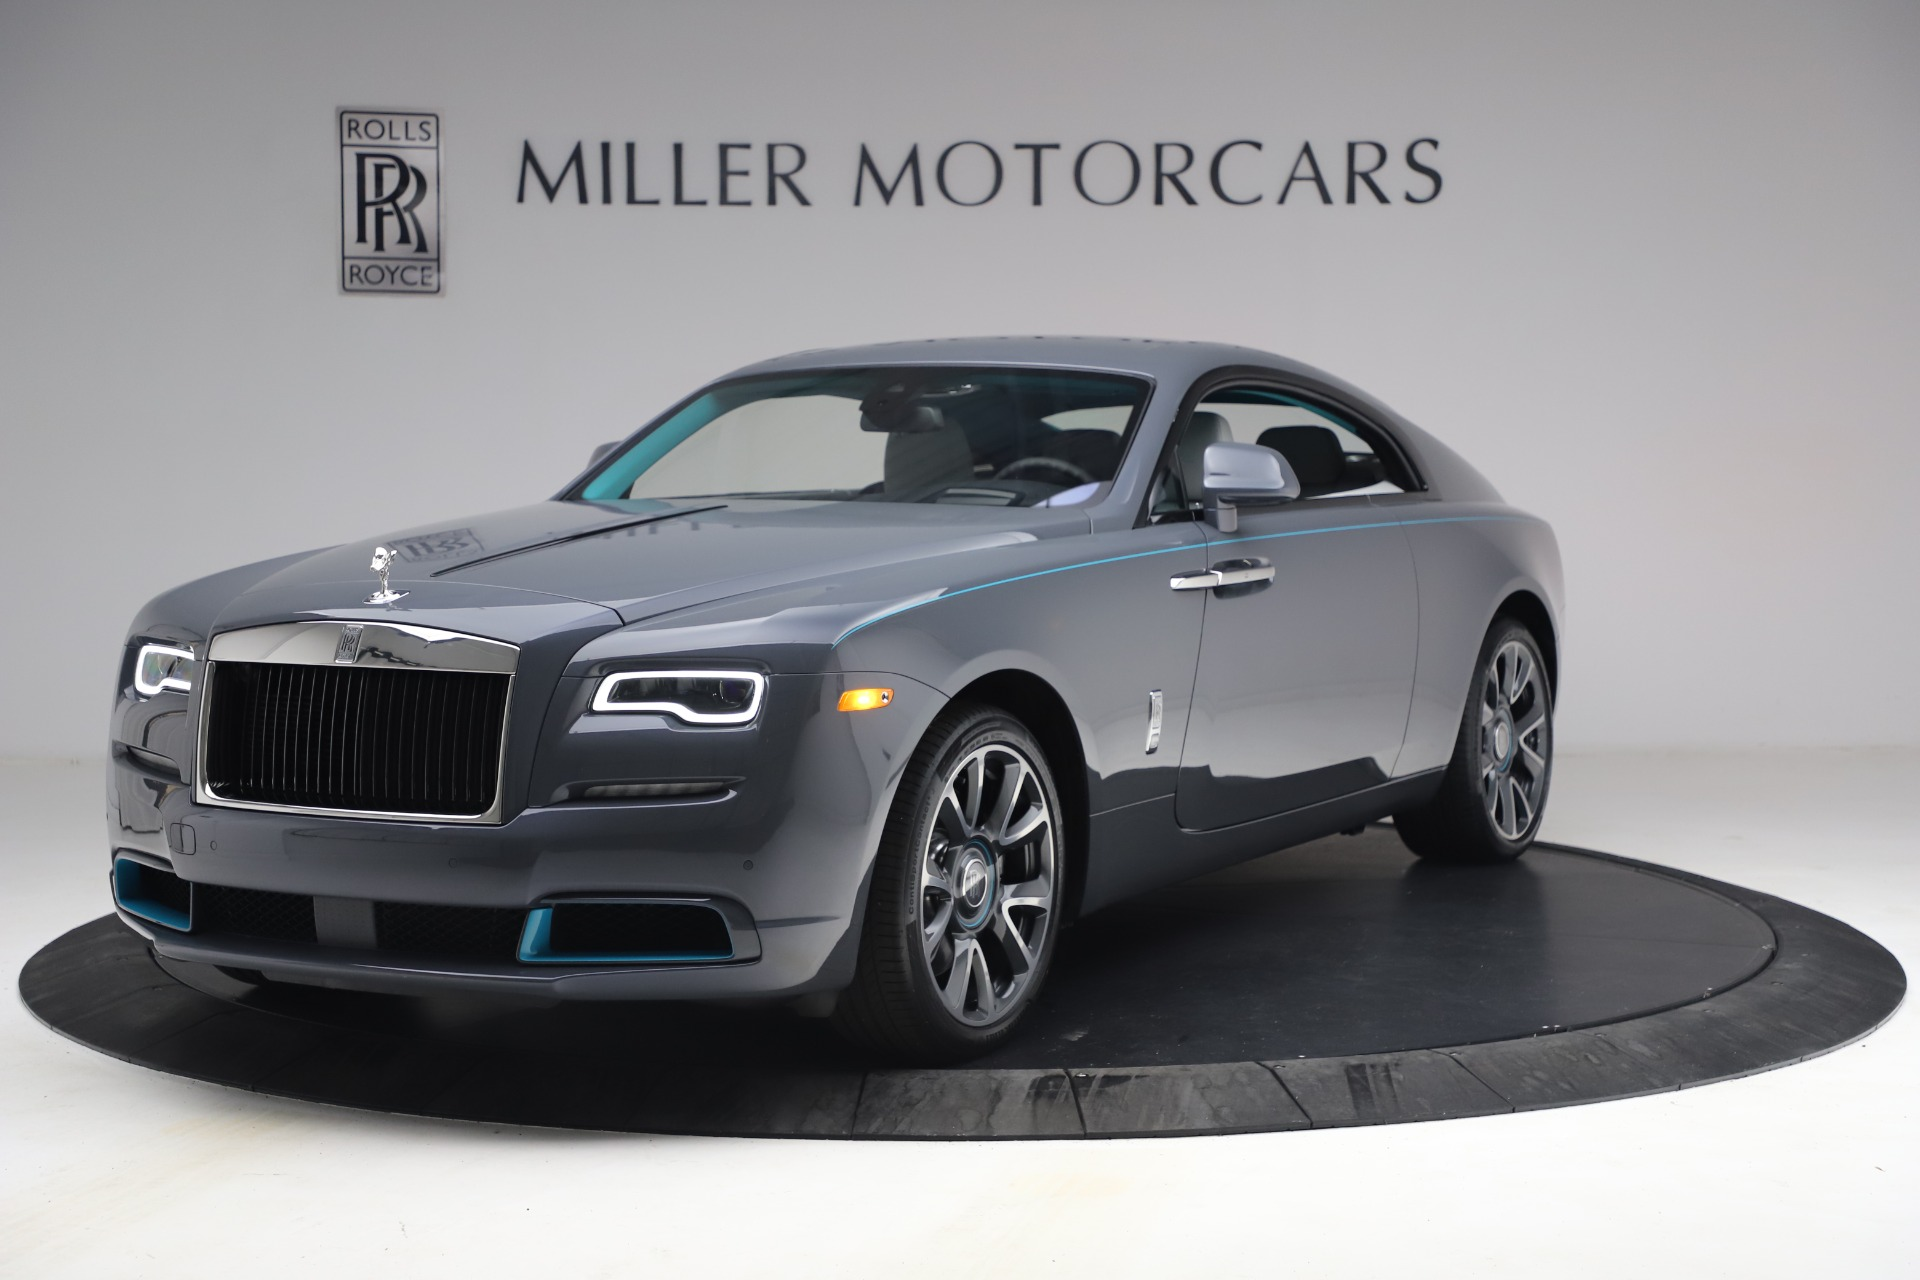 Used 2021 Rolls-Royce Wraith KRYPTOS for sale $444,275 at Bentley Greenwich in Greenwich CT 06830 1